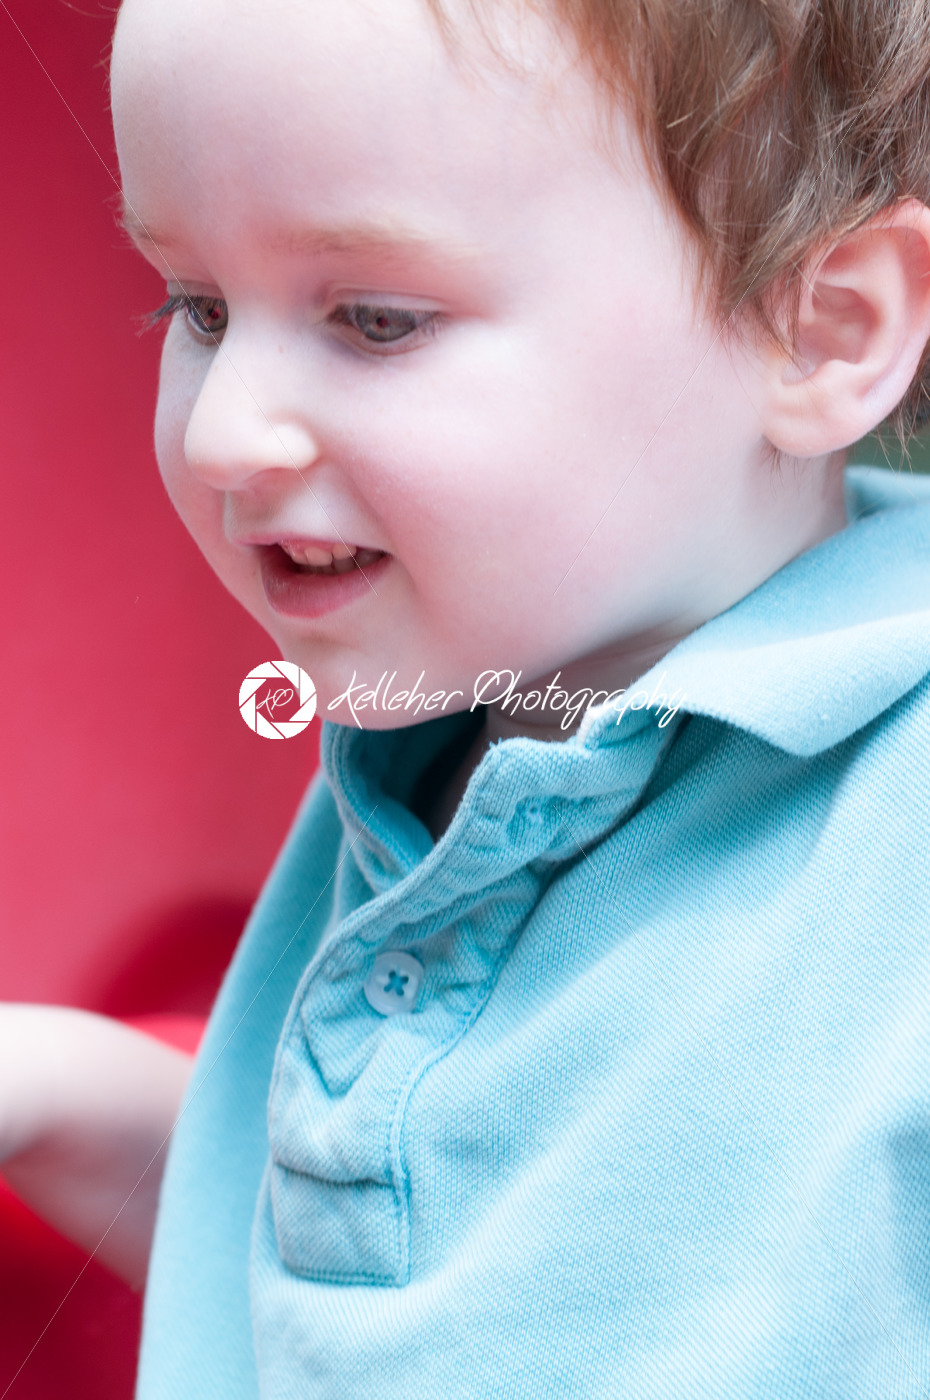 Young boy having fun outside at park on a playground swing set - Kelleher Photography Store